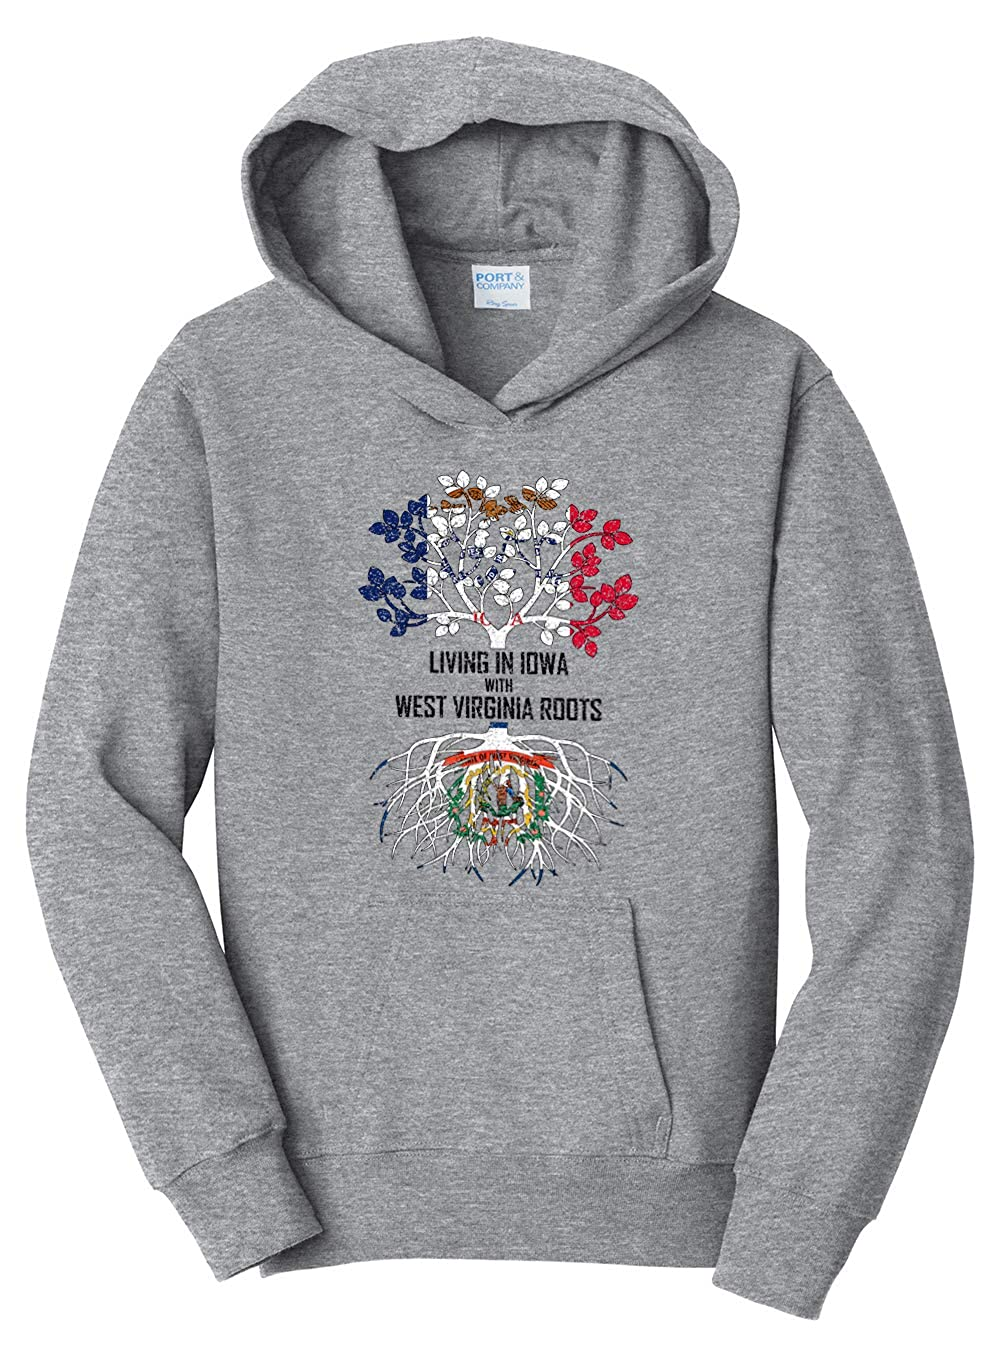 Tenacitee Girls Youth Living in Iowa with West Virginia Roots Hooded Sweatshirt Heather Grey Large